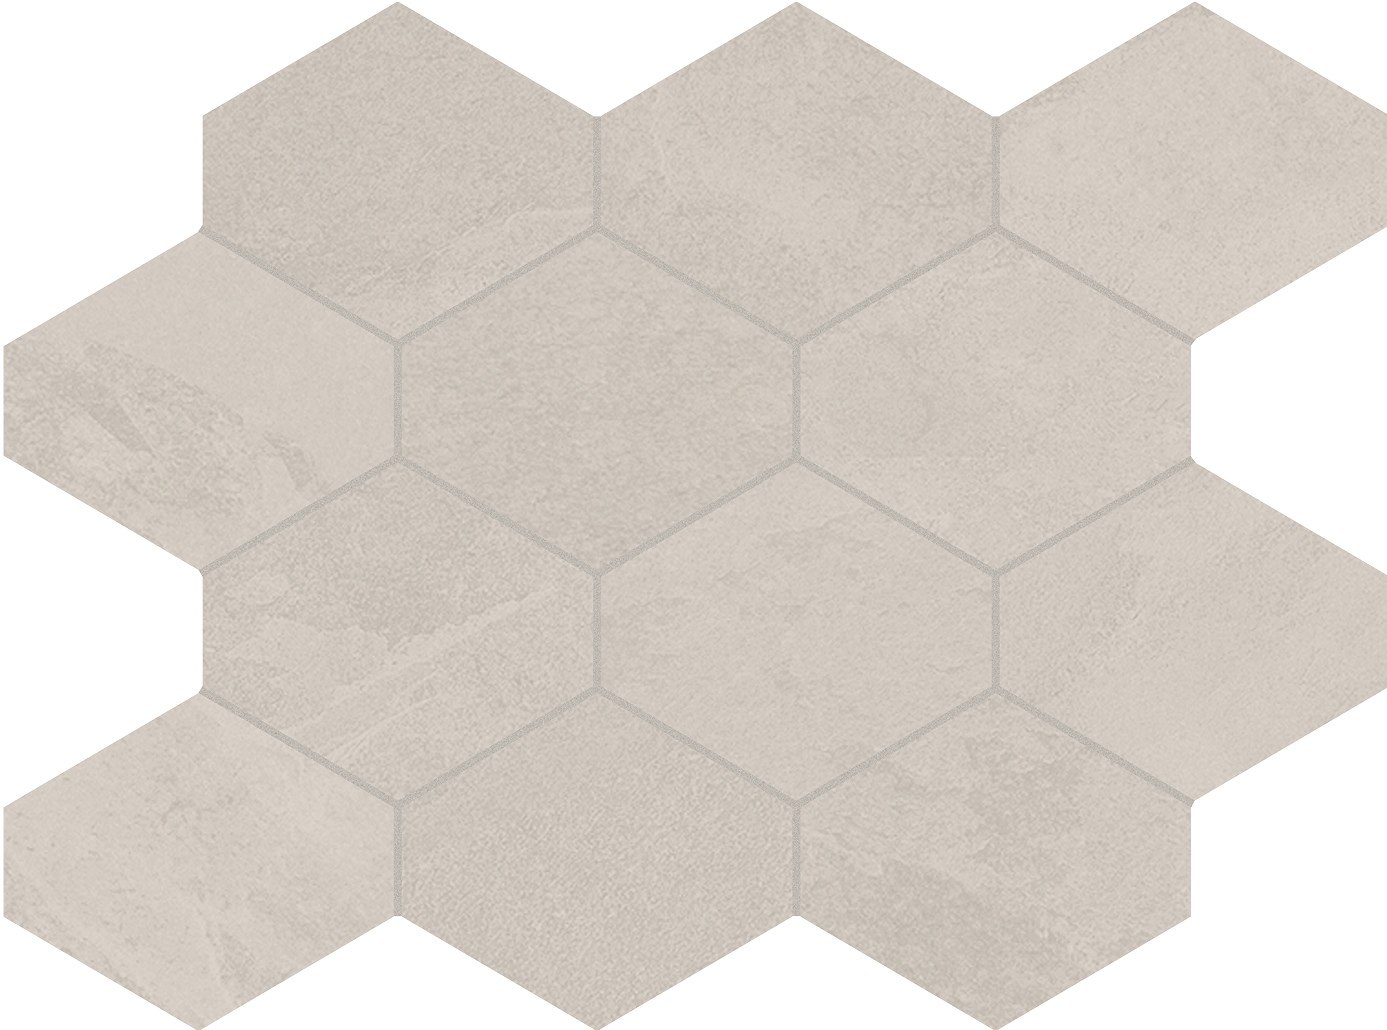 4 x 4 Brazilian Slate Oxford white Rectified Porcelain hexagon